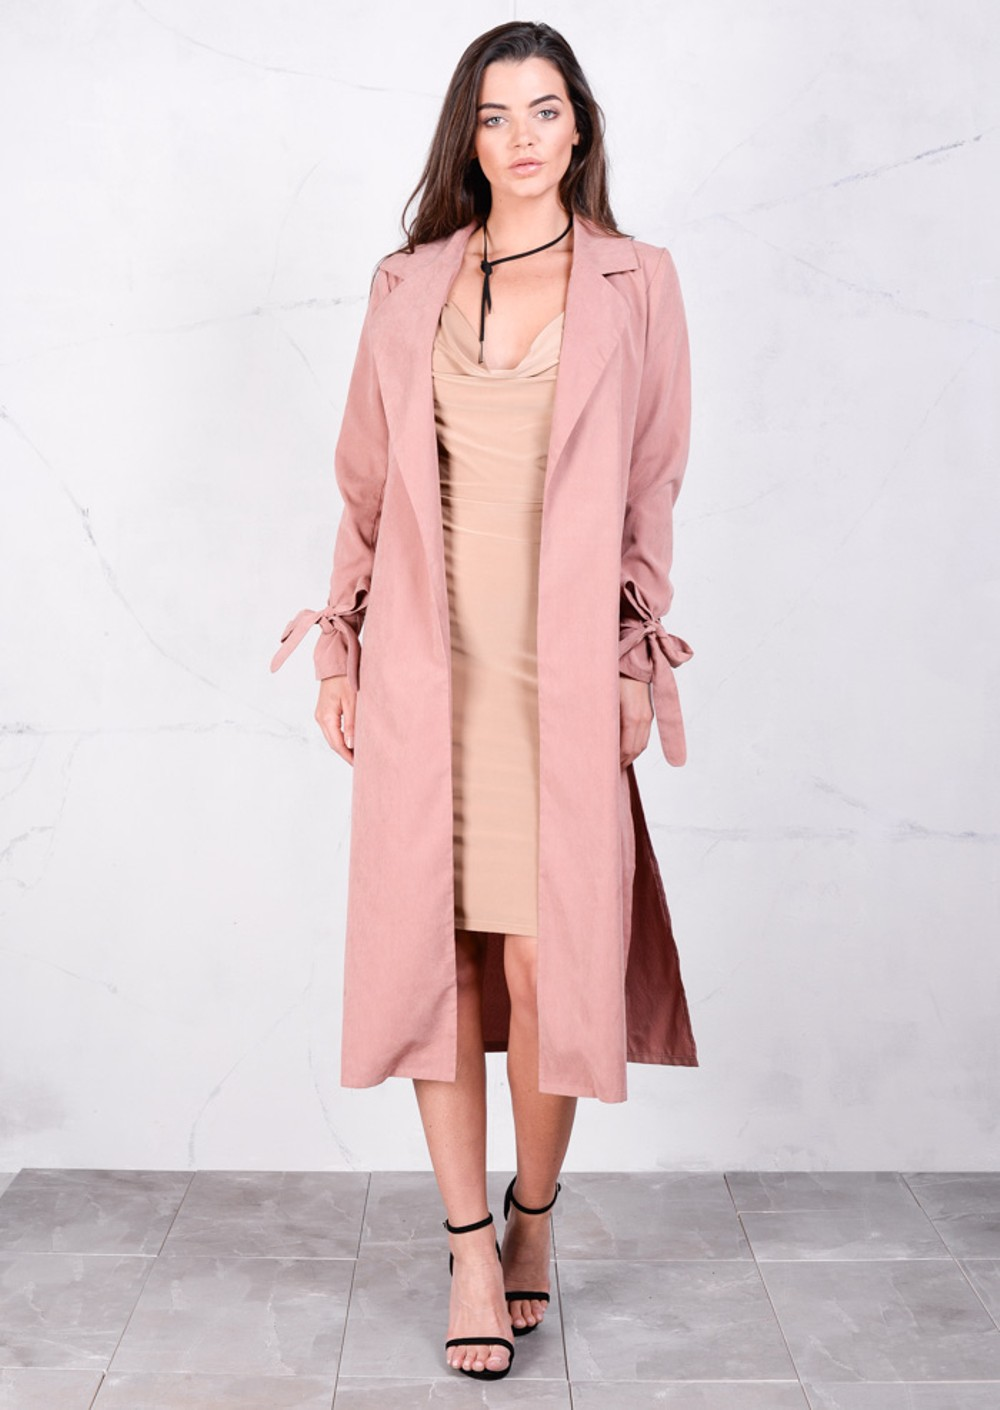 Rose Pink Coat | Fashion Women's Coat 2017